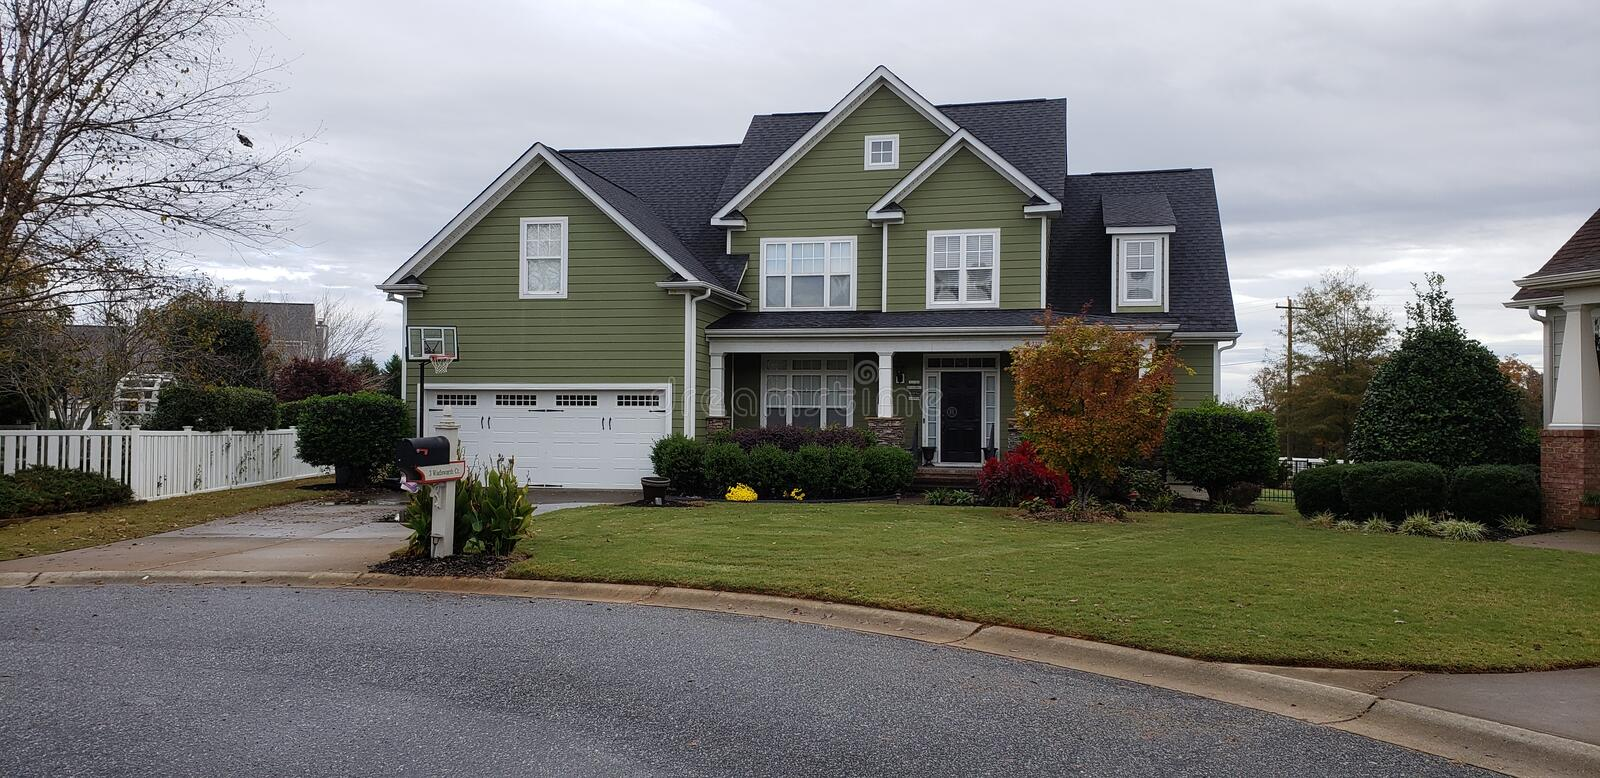 Home. Beautiful suburban home in neighborhood in South royalty free stock photography